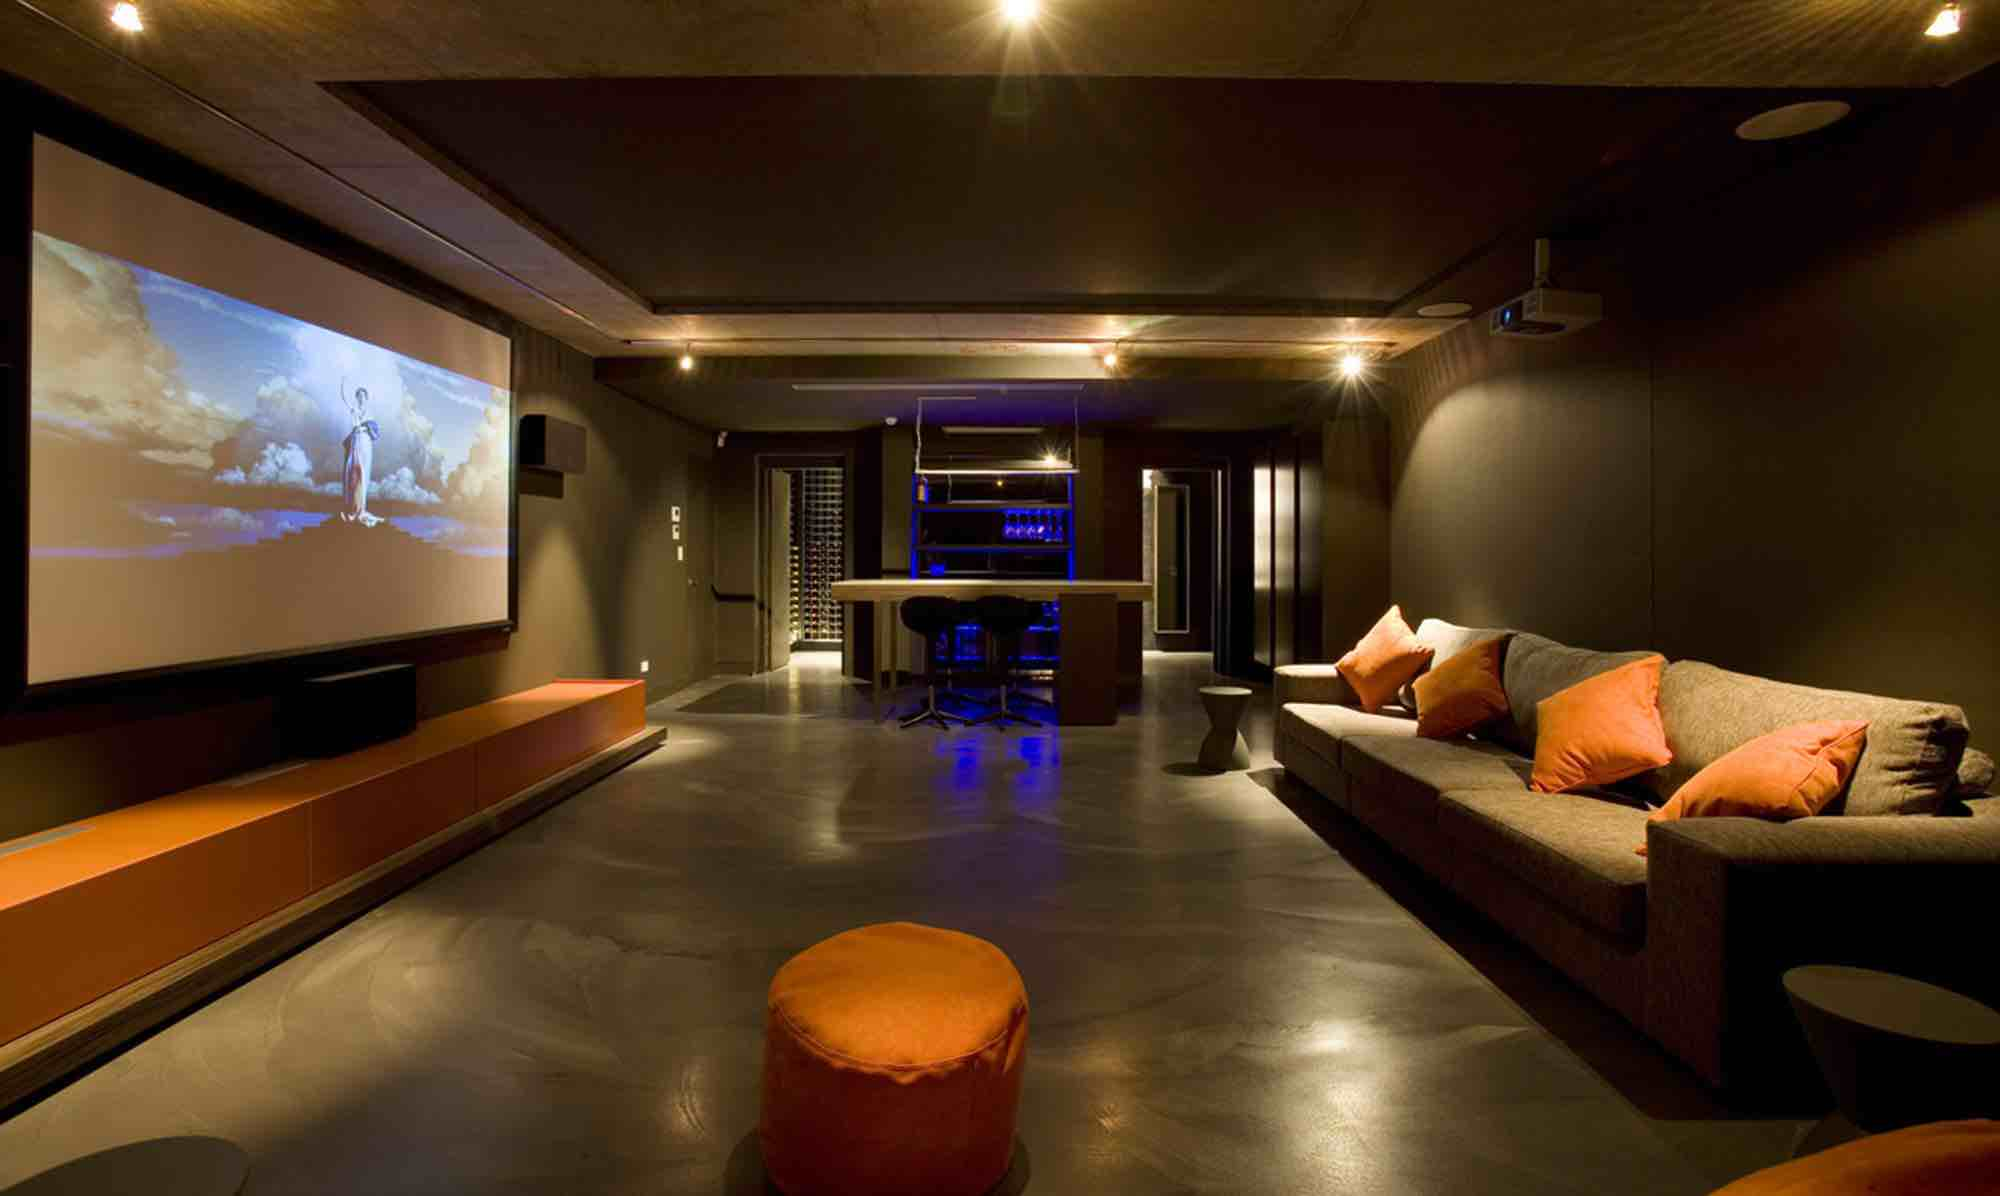 minosa-design-home-theatre-design-dark-kitchenette-led-exposed-orange-concrete-0